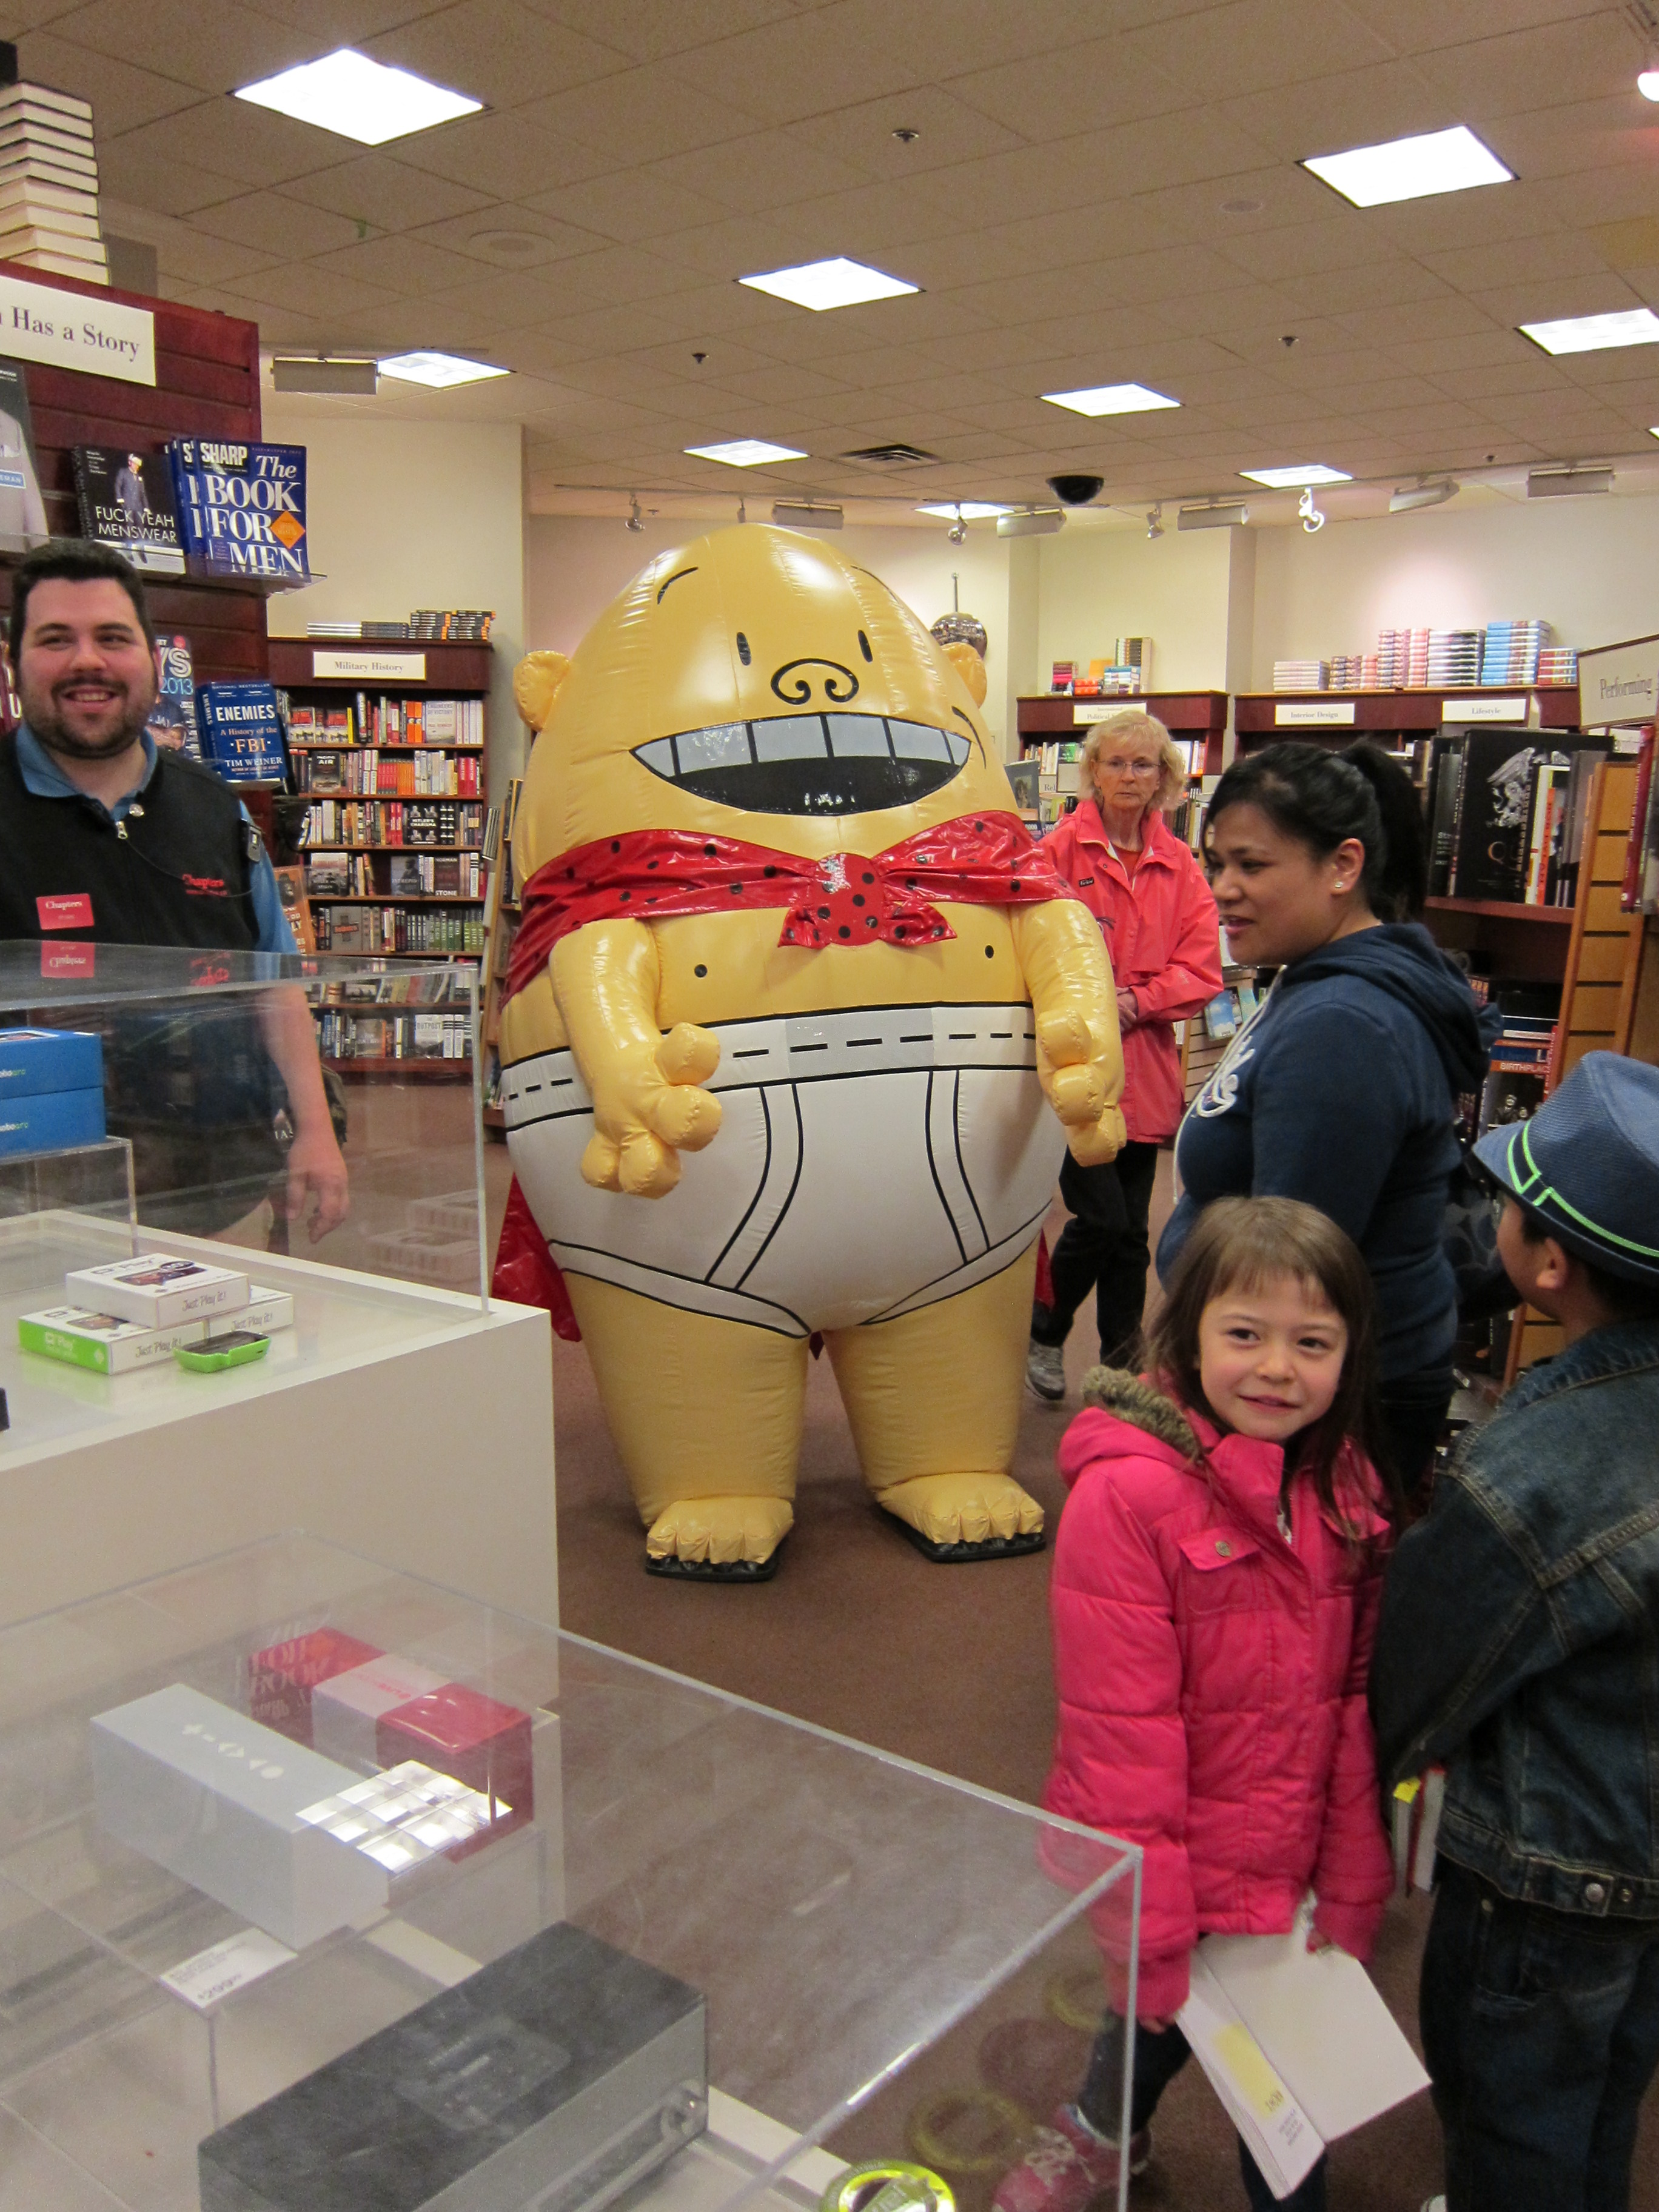 Giant inflated Captain Underpants in the store